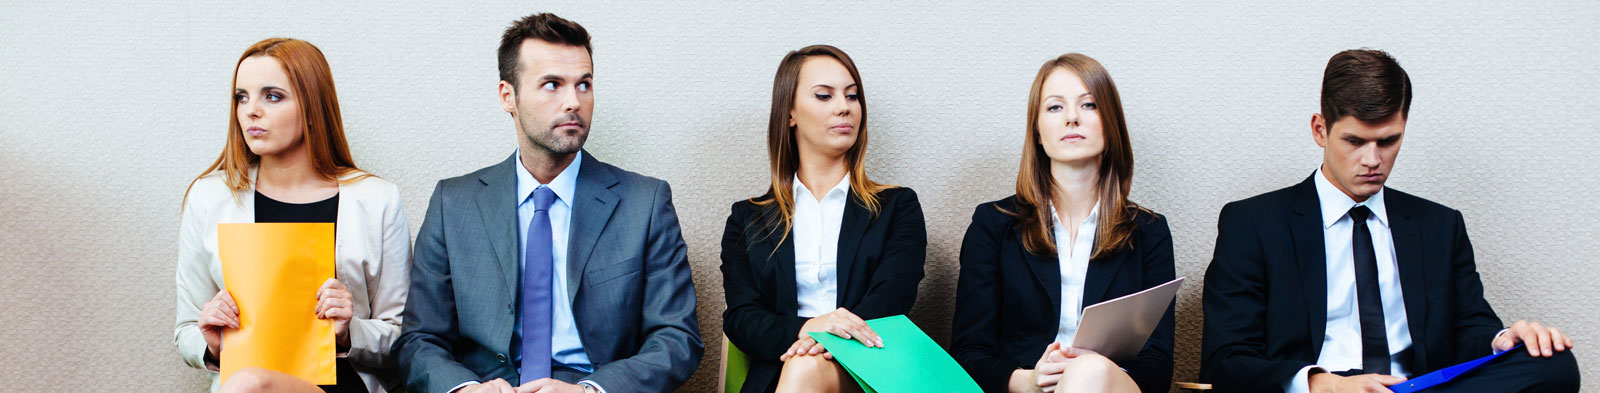 Applicants wait for interview